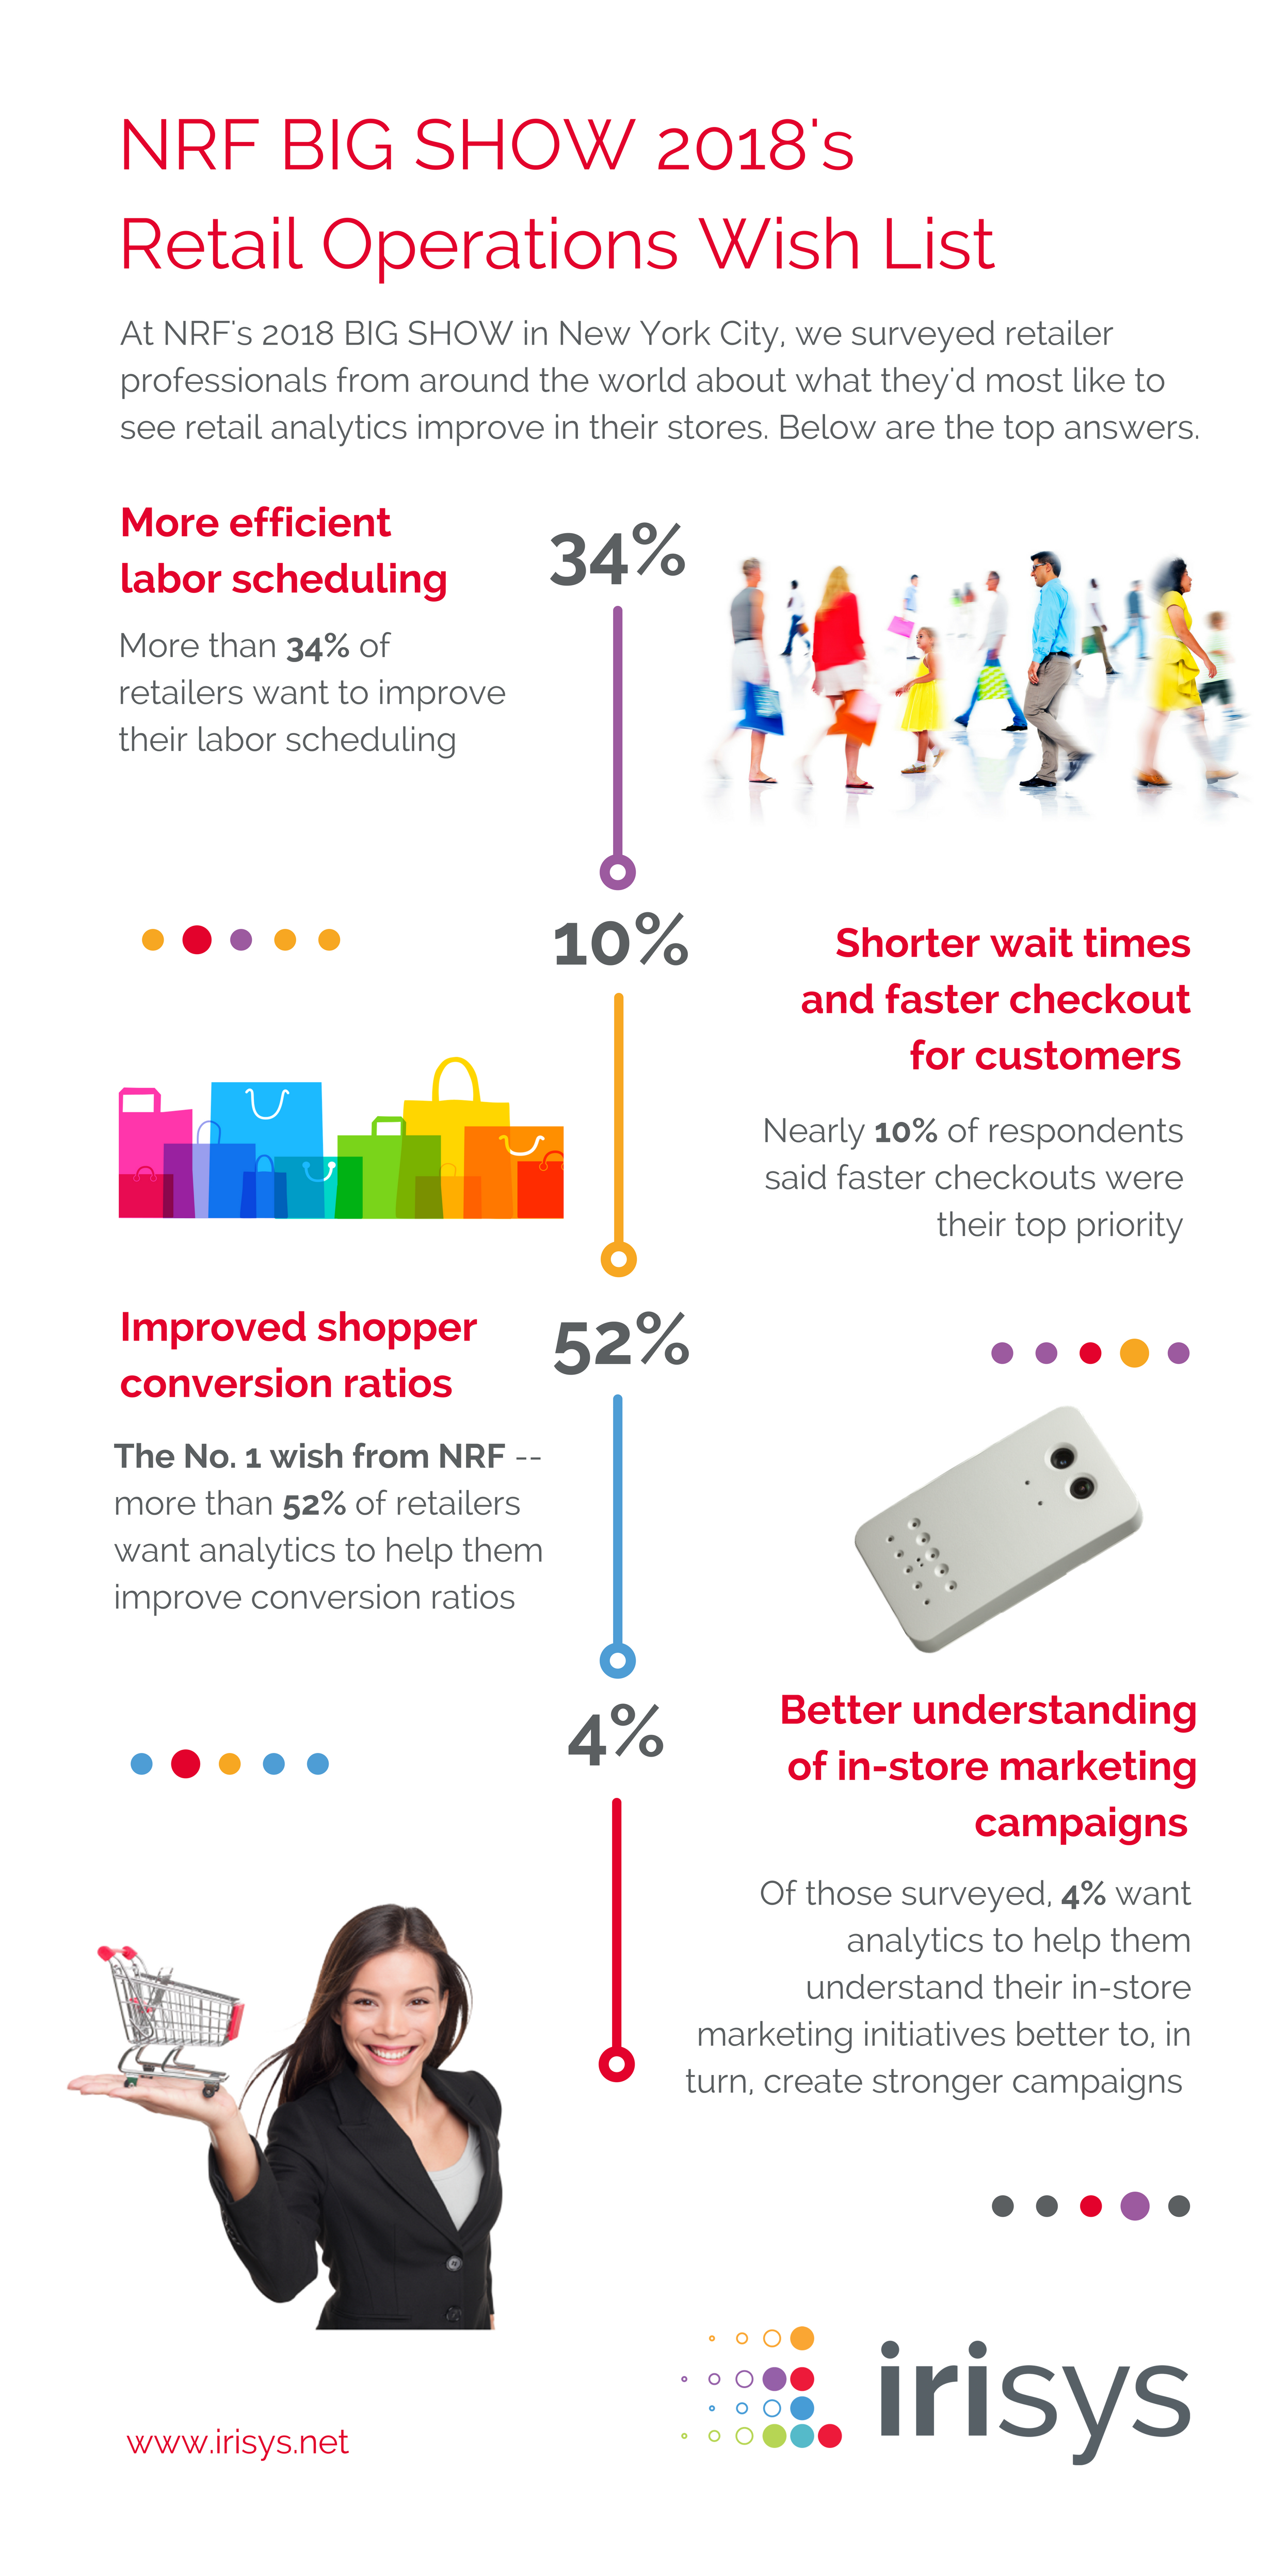 Post-NRF 2018 On-stand Infographic FINAL 2.5.2018